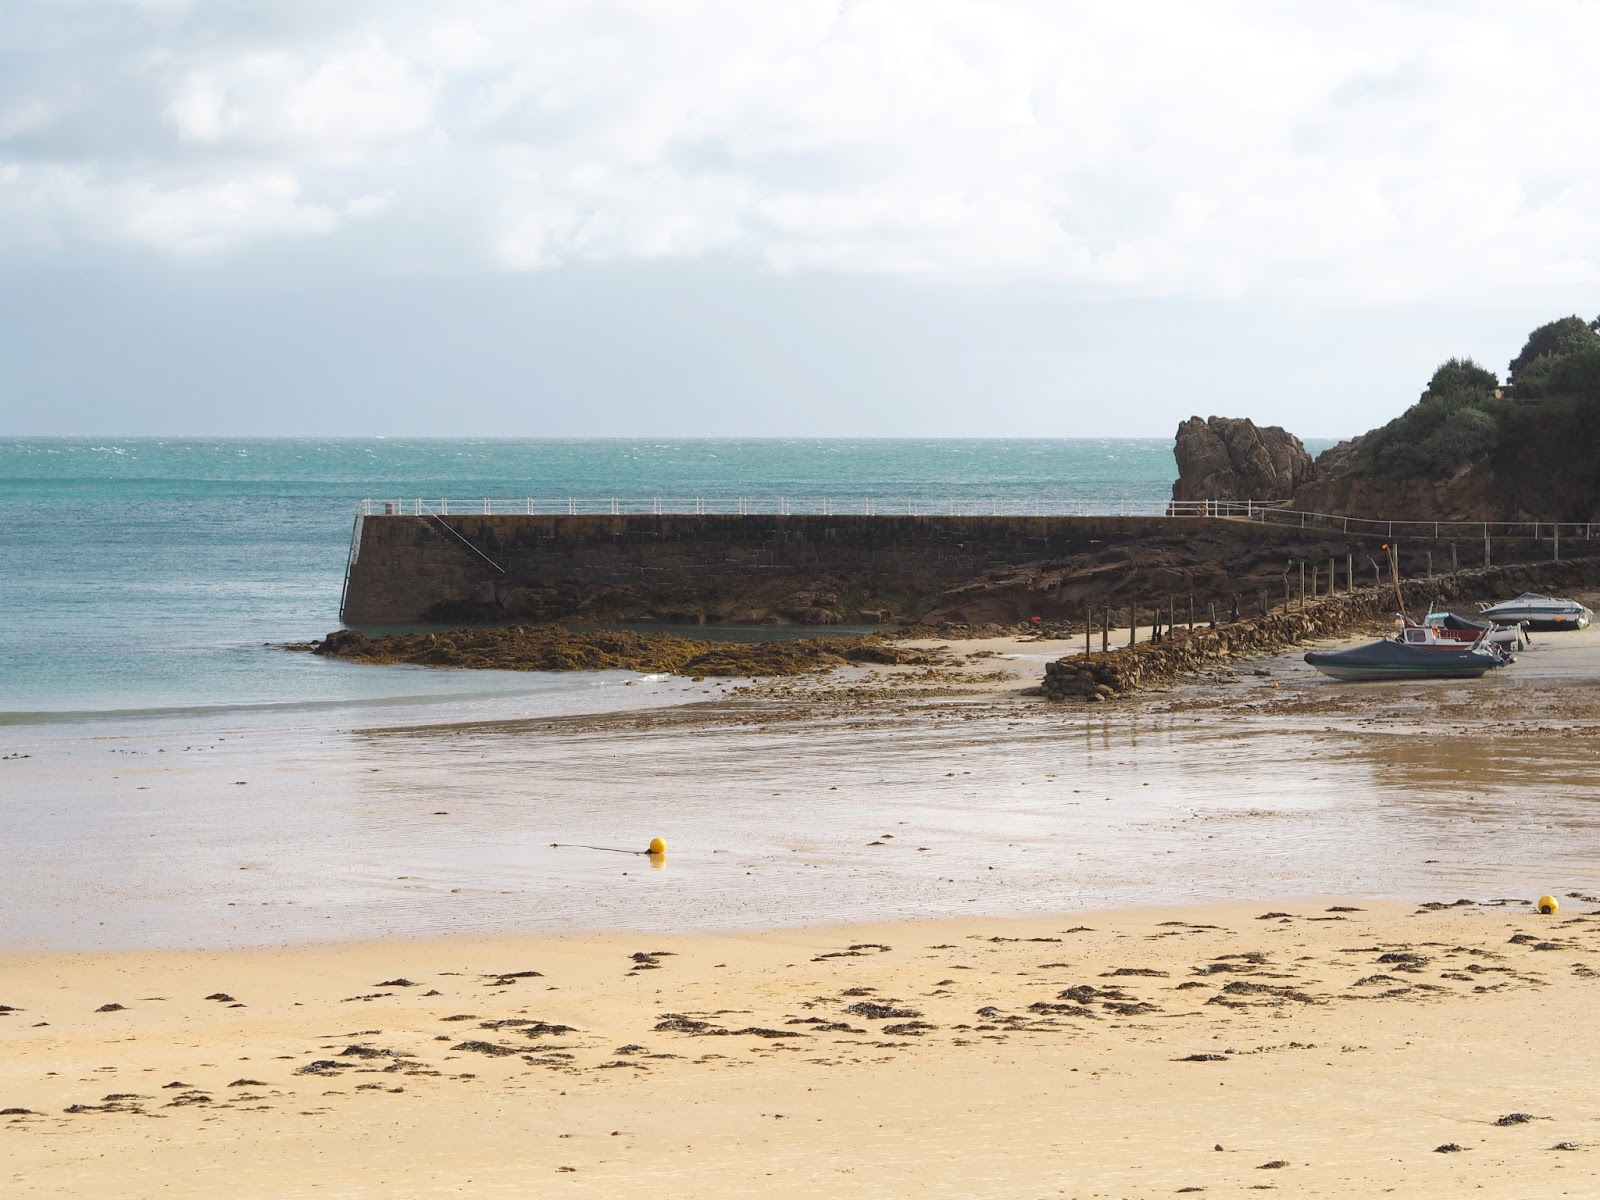 Postcards from St Brelades Bay, Jersey, Channel Islands, Katie Kirk Loves, UK Blogger, Travel Blogger, St Brelades Bay Hotel, #VisitJersey, #TheIslandBreak, UK Travel, Travel Photography, Travel The World, Wanderlust, Women Who Explore, Girls That Wander, Femme Travel